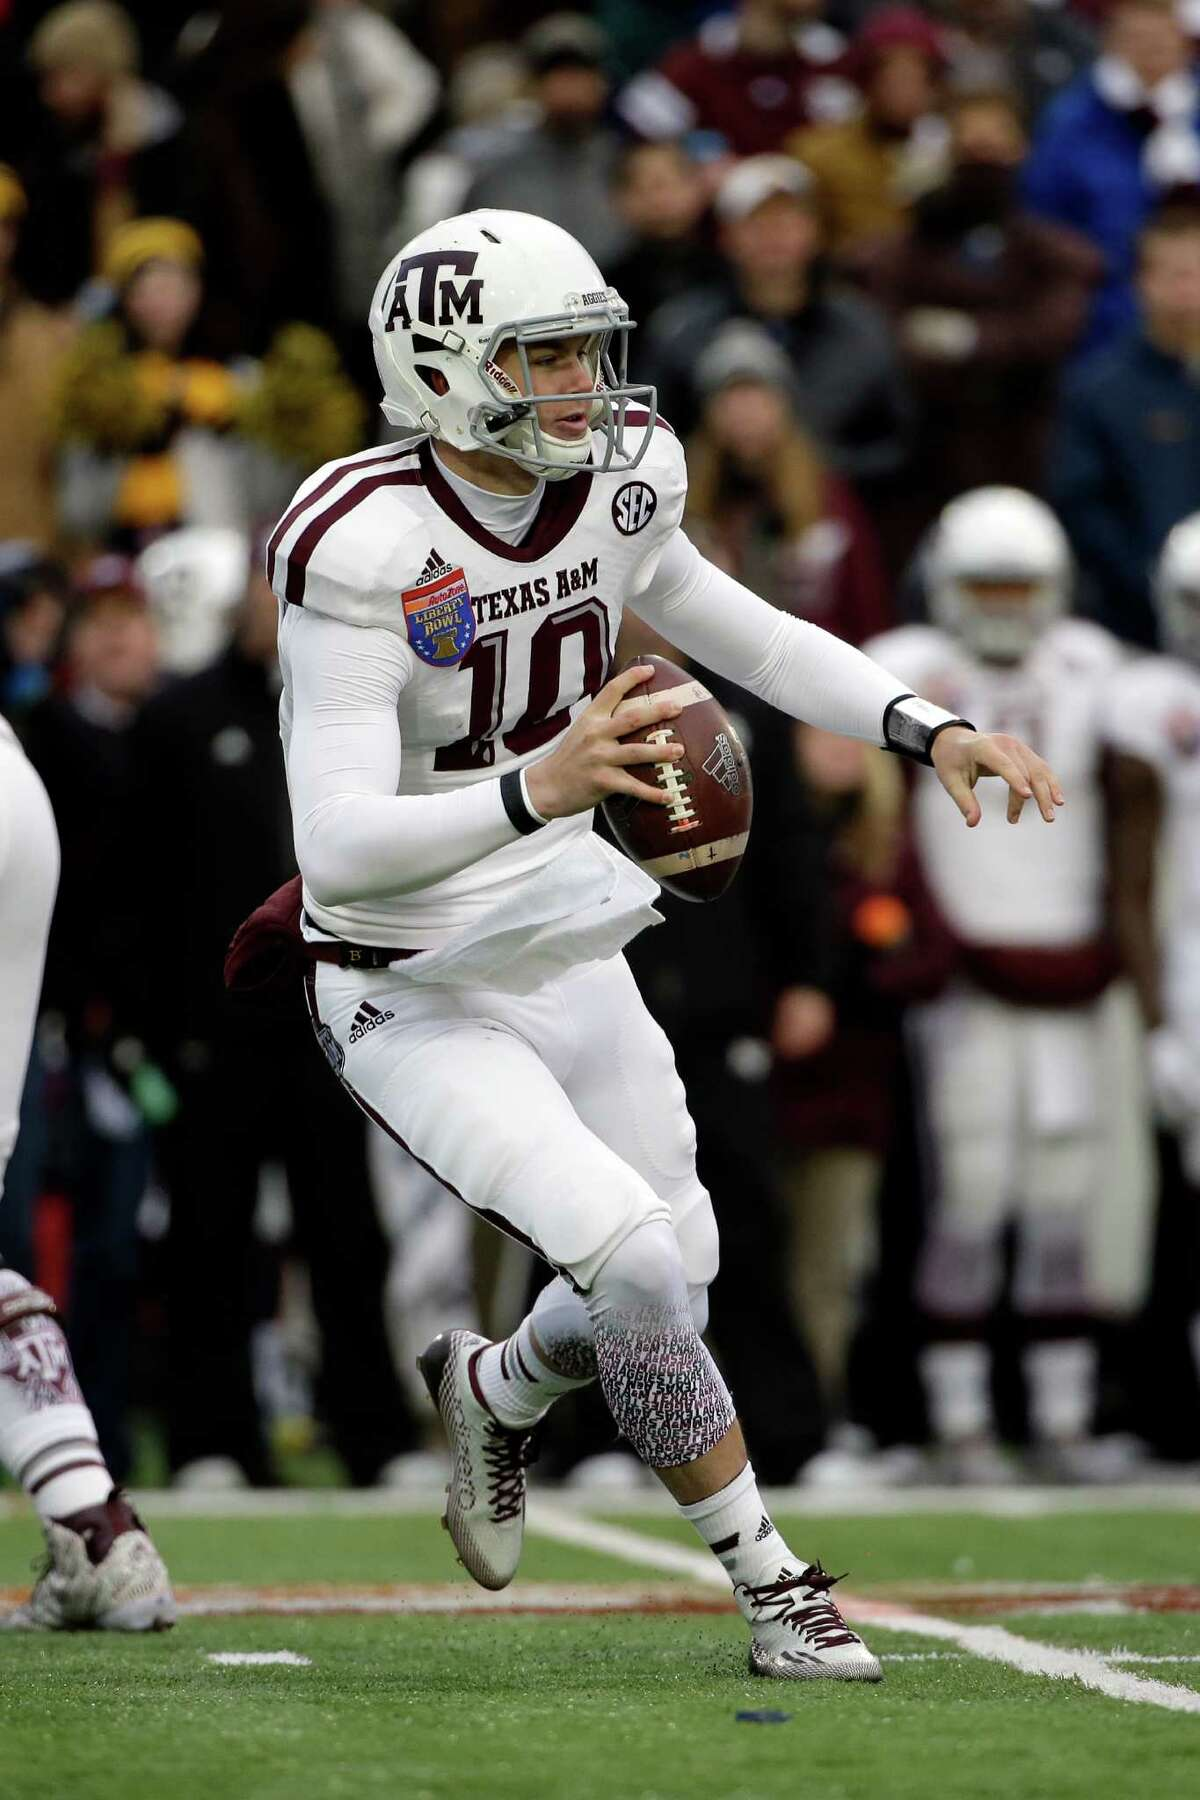 Texas A&M quarterback Kyle Allen (10) plays against West Virginia in the second half of the Liberty Bowl NCAA college football game Monday, Dec. 29, 2014, in Memphis, Tenn. Texas A&M won 45-37.